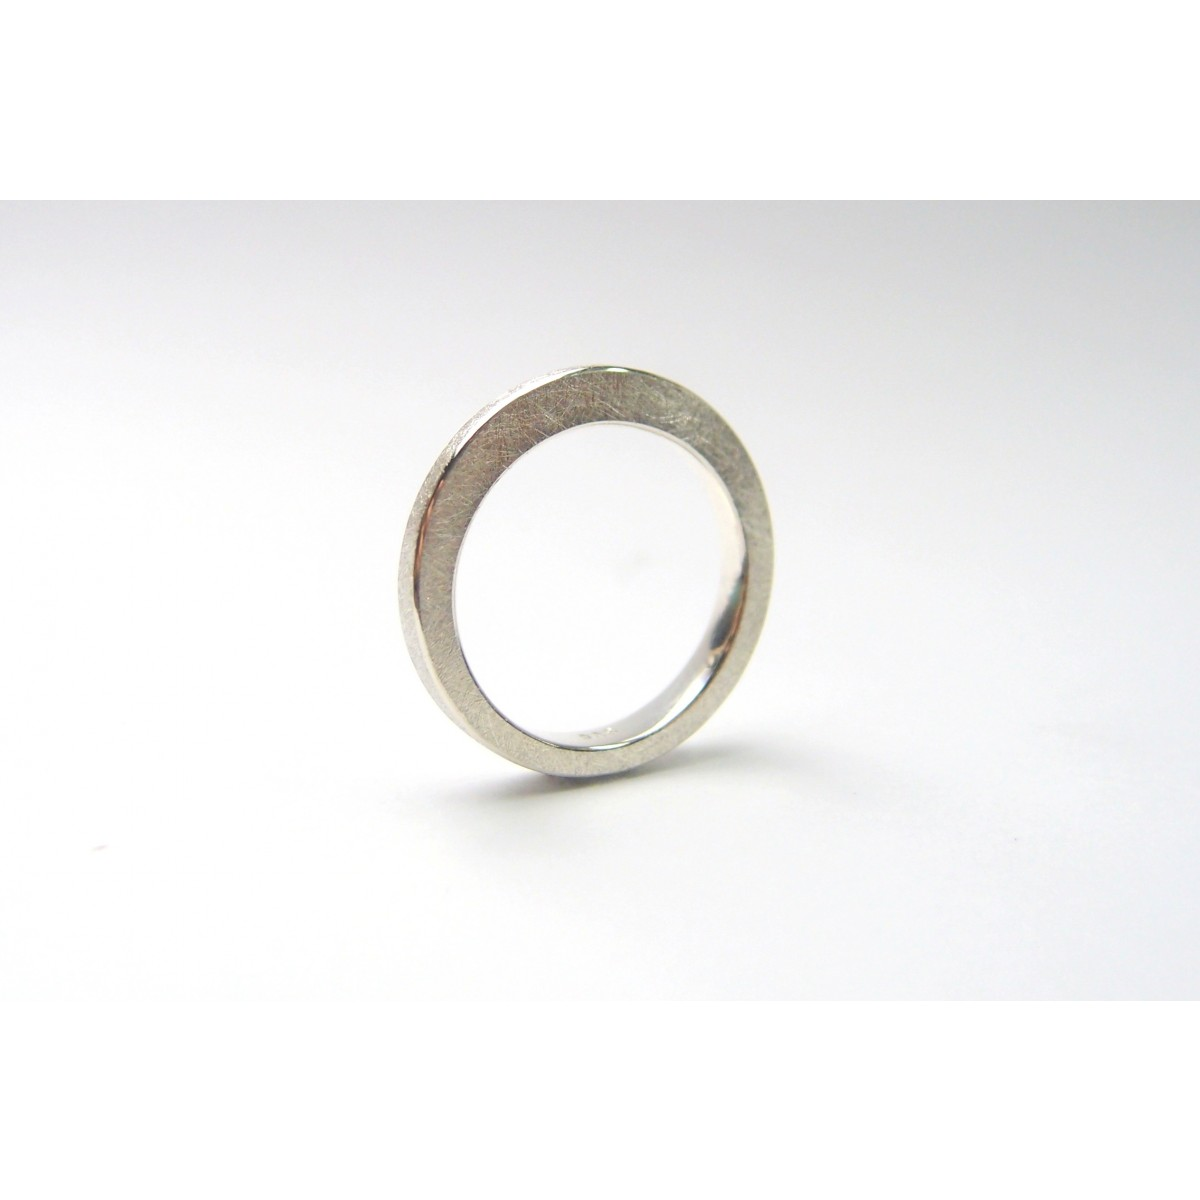 "DOPPELLUDWIG Ring ""Verformt"" aus 925/- Silber"